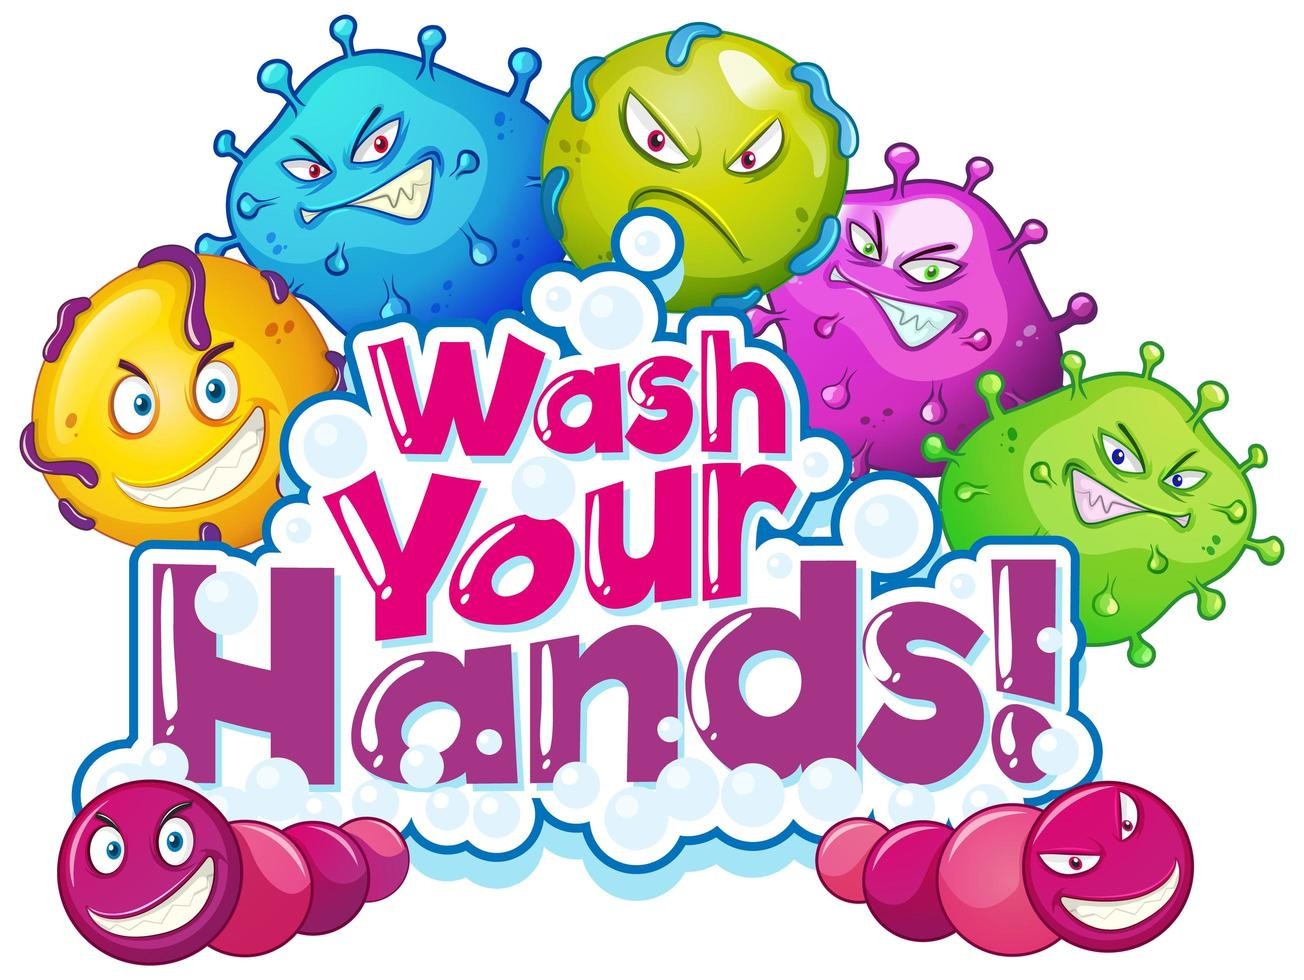 Wash Your Hands Poster Design